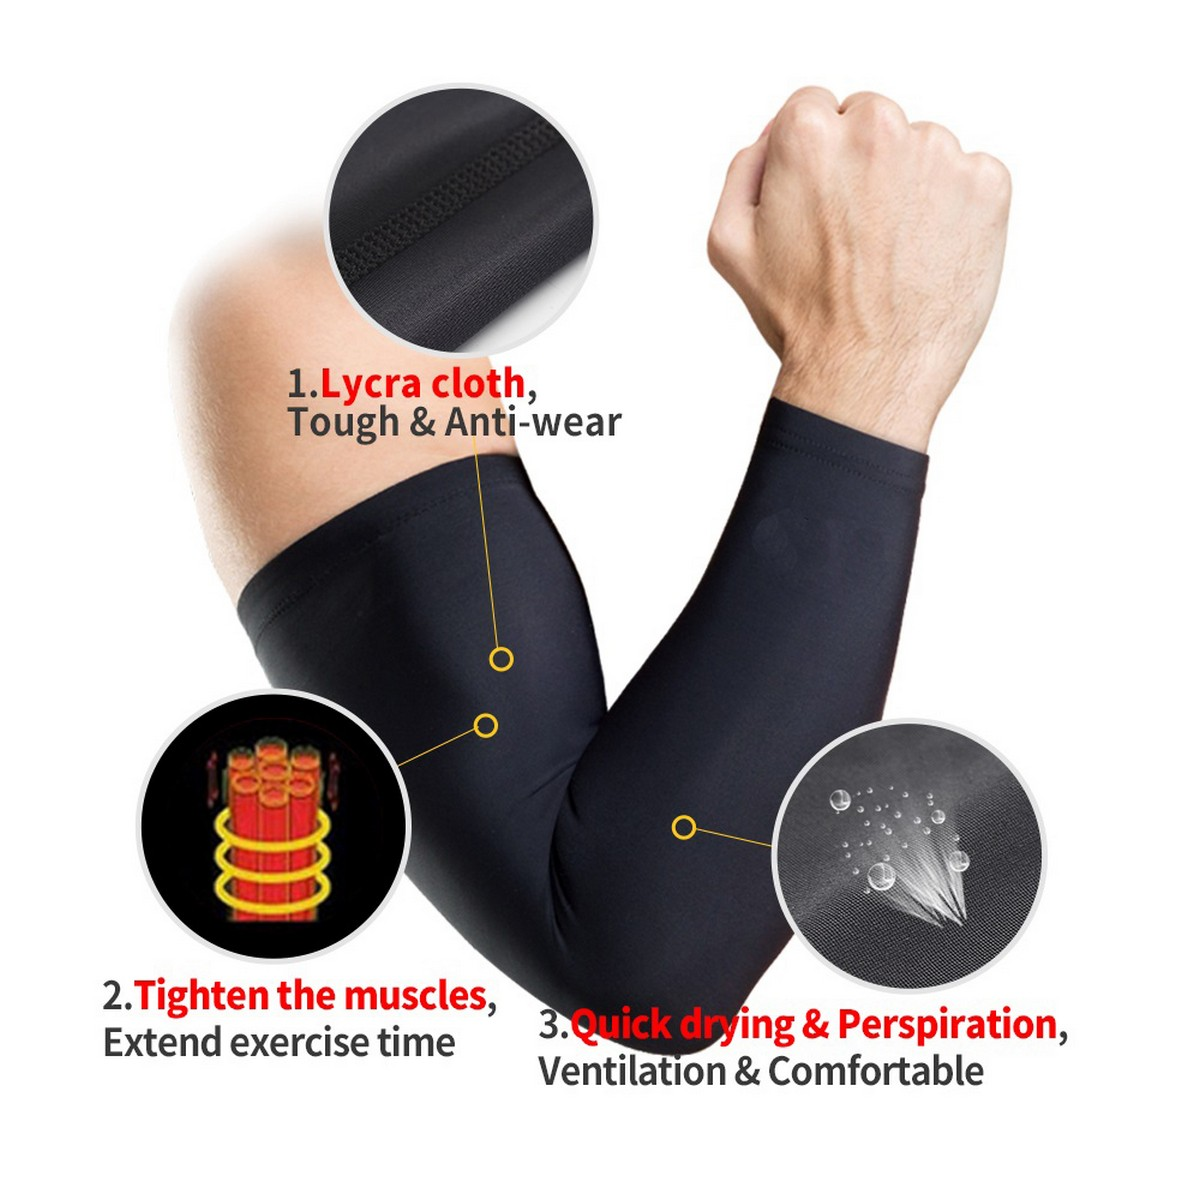 Pair of Arms Muffs Protects from Sunlight Germs Dust Useful for Golf Cyclin Sports and Gym Exercise Arm Sleeves for Men Sports Sleeves For Sun Protection or Cooling Compression in Black and White (Pack of 1 Pair, 2 Pcs, Free Size)